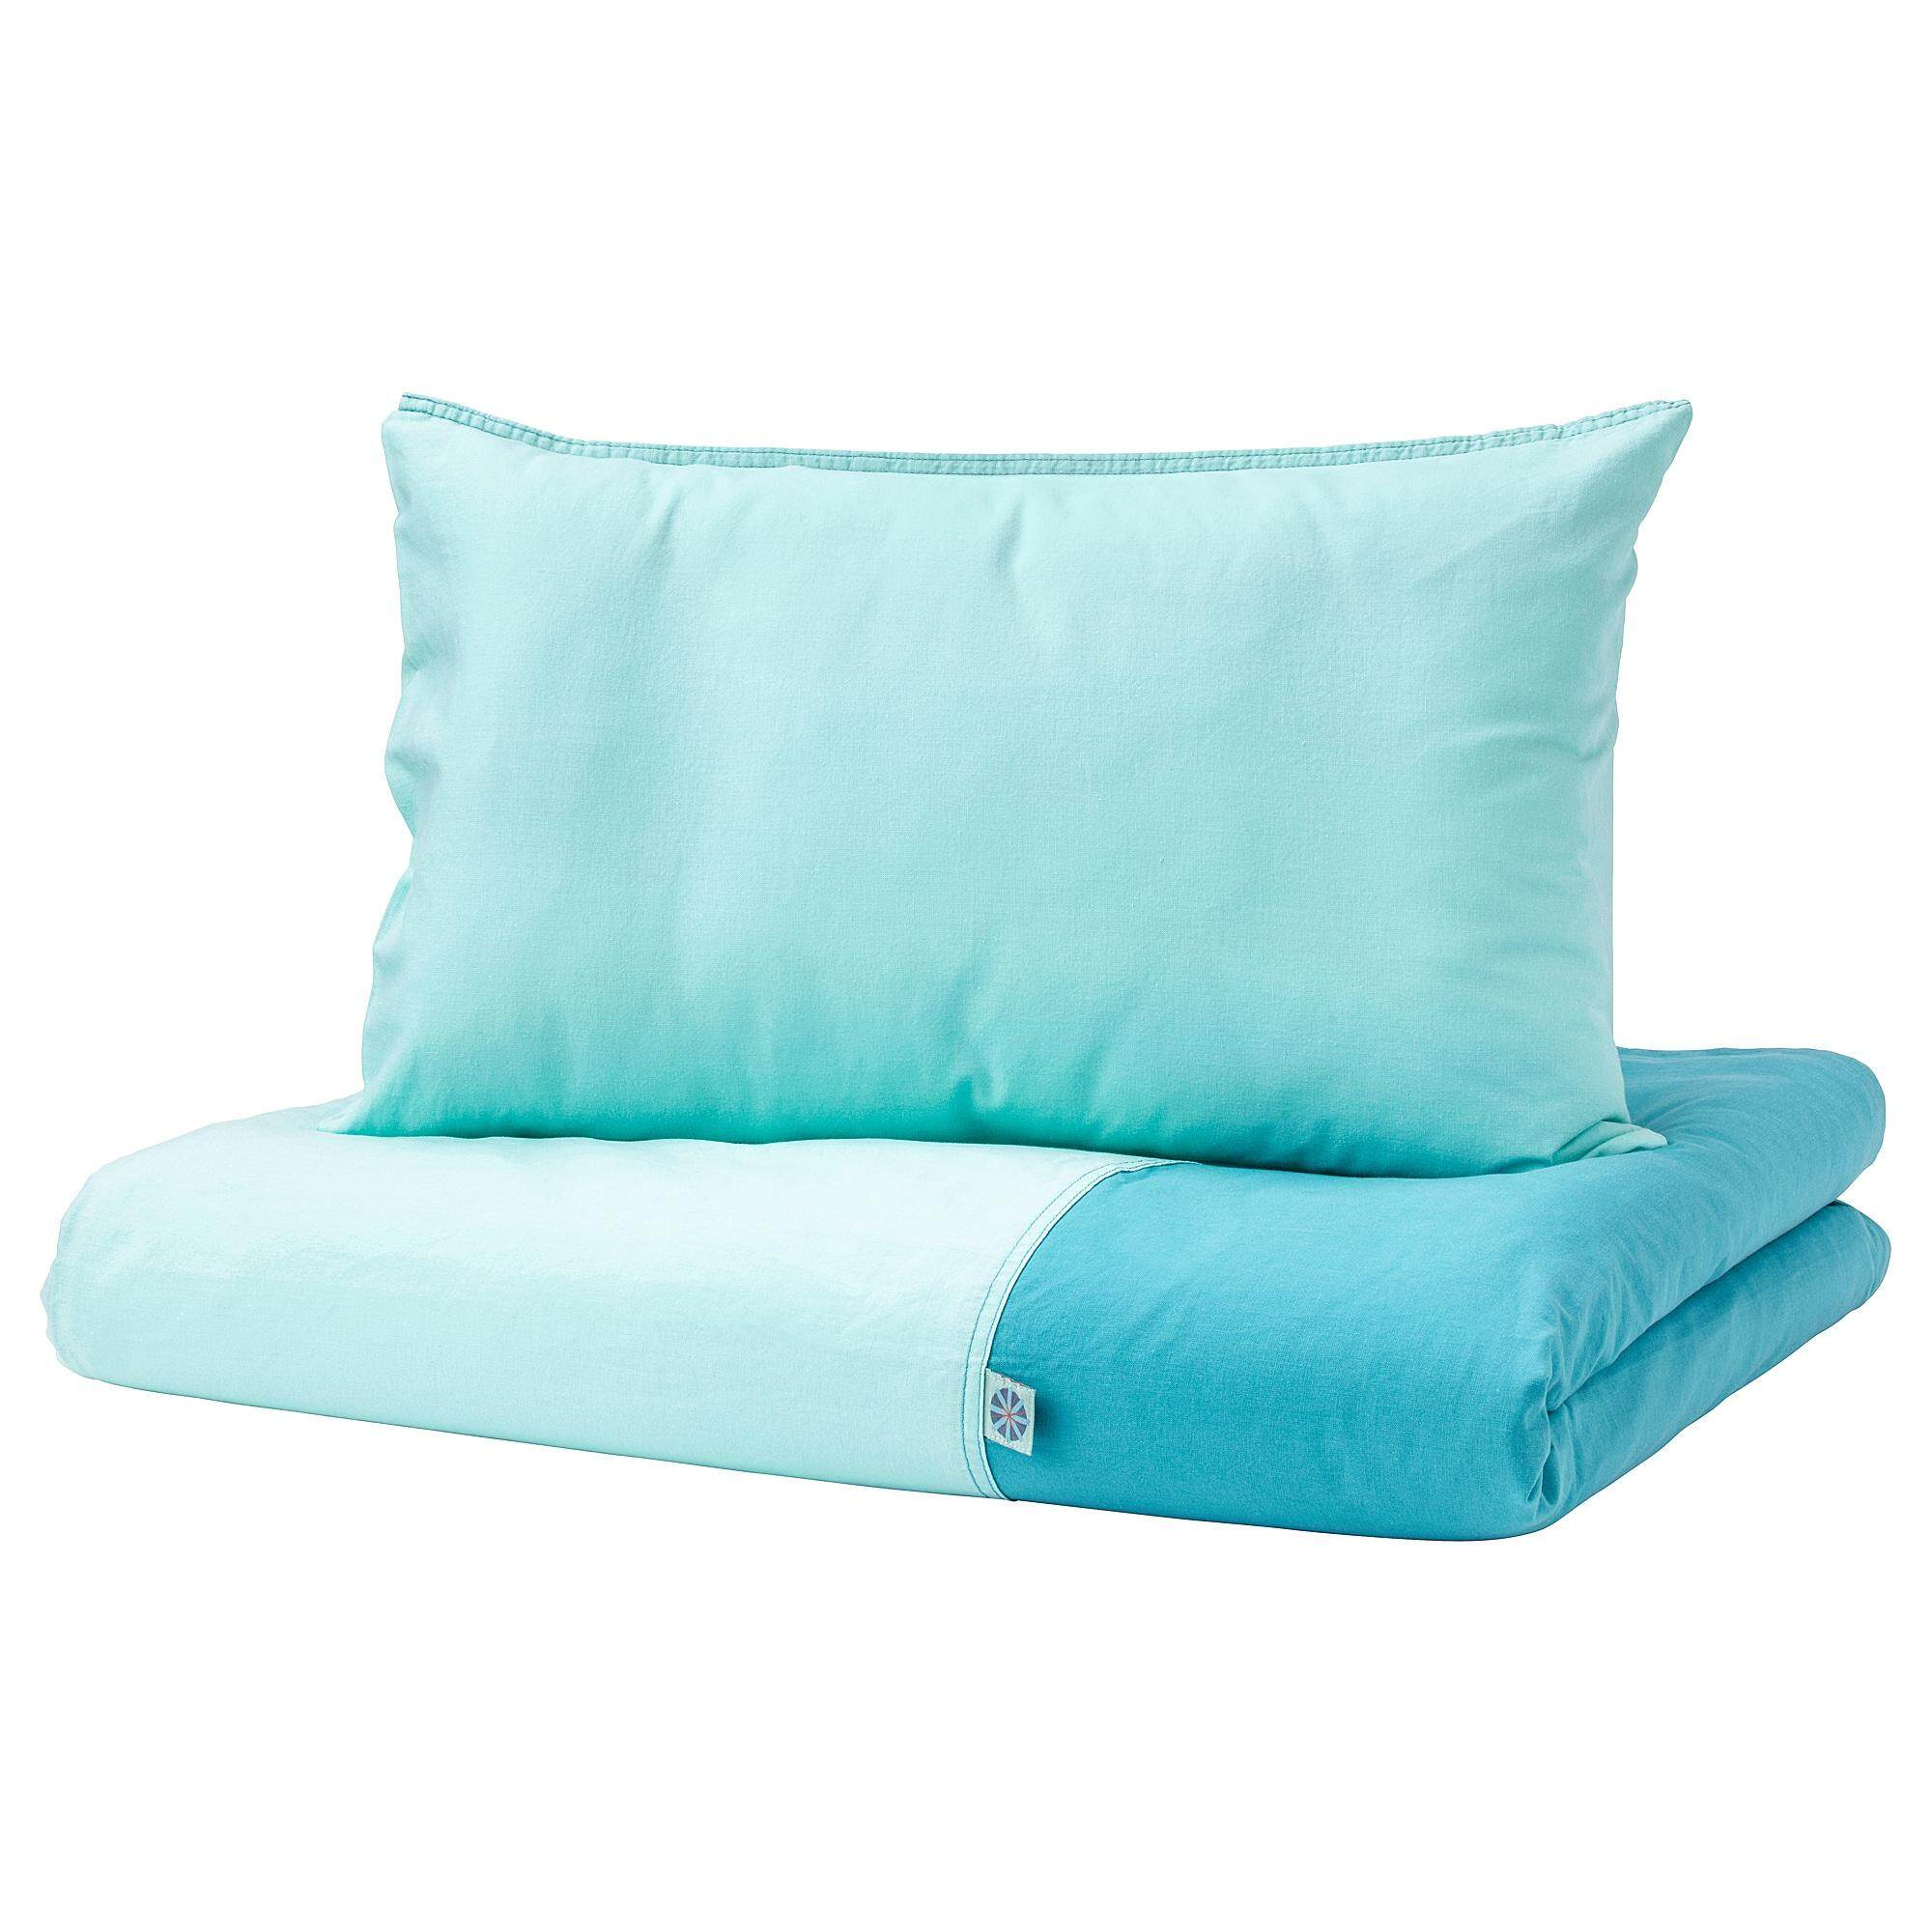 Tillgiven Quilt Cover/pillowcase For Cot Turquoise 110x125/35x55 Cm By Eightynine.